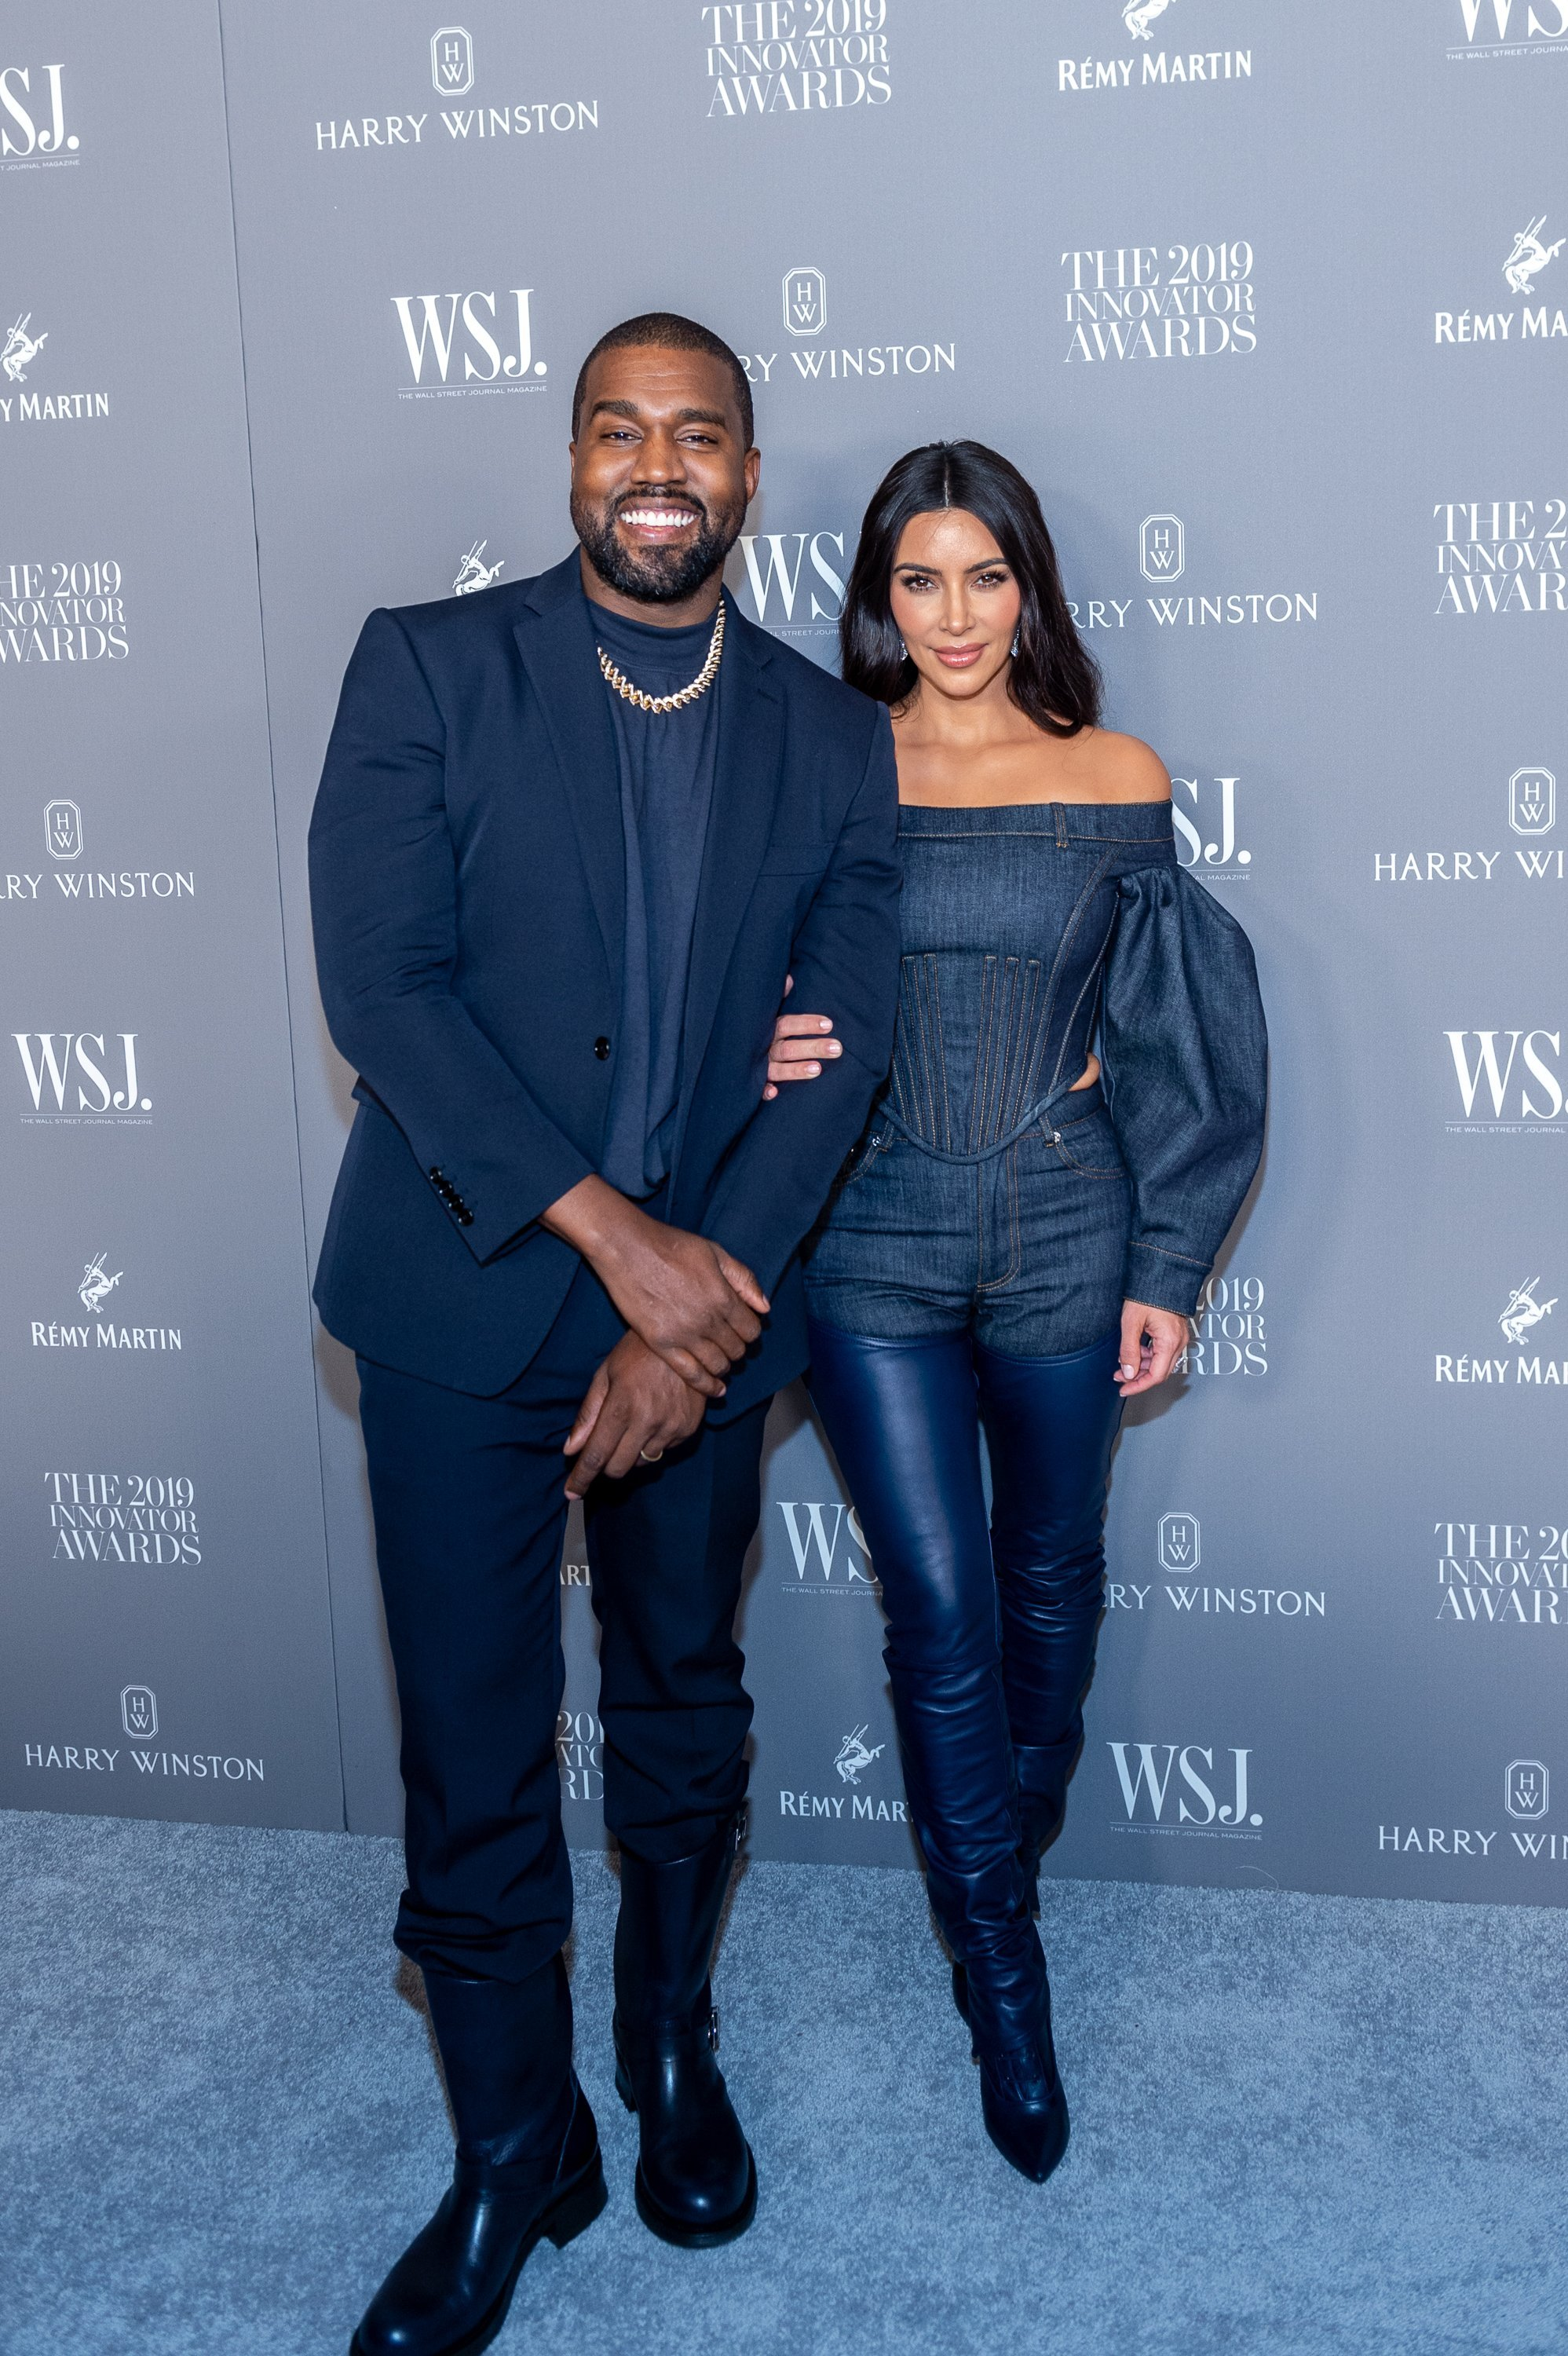 Kanye West and Kim Kardashian attend the WSJ Mag 2019 Innovator Awards at The Museum of Modern Art in New York City on November 06, 2019. | Source: Getty Images.